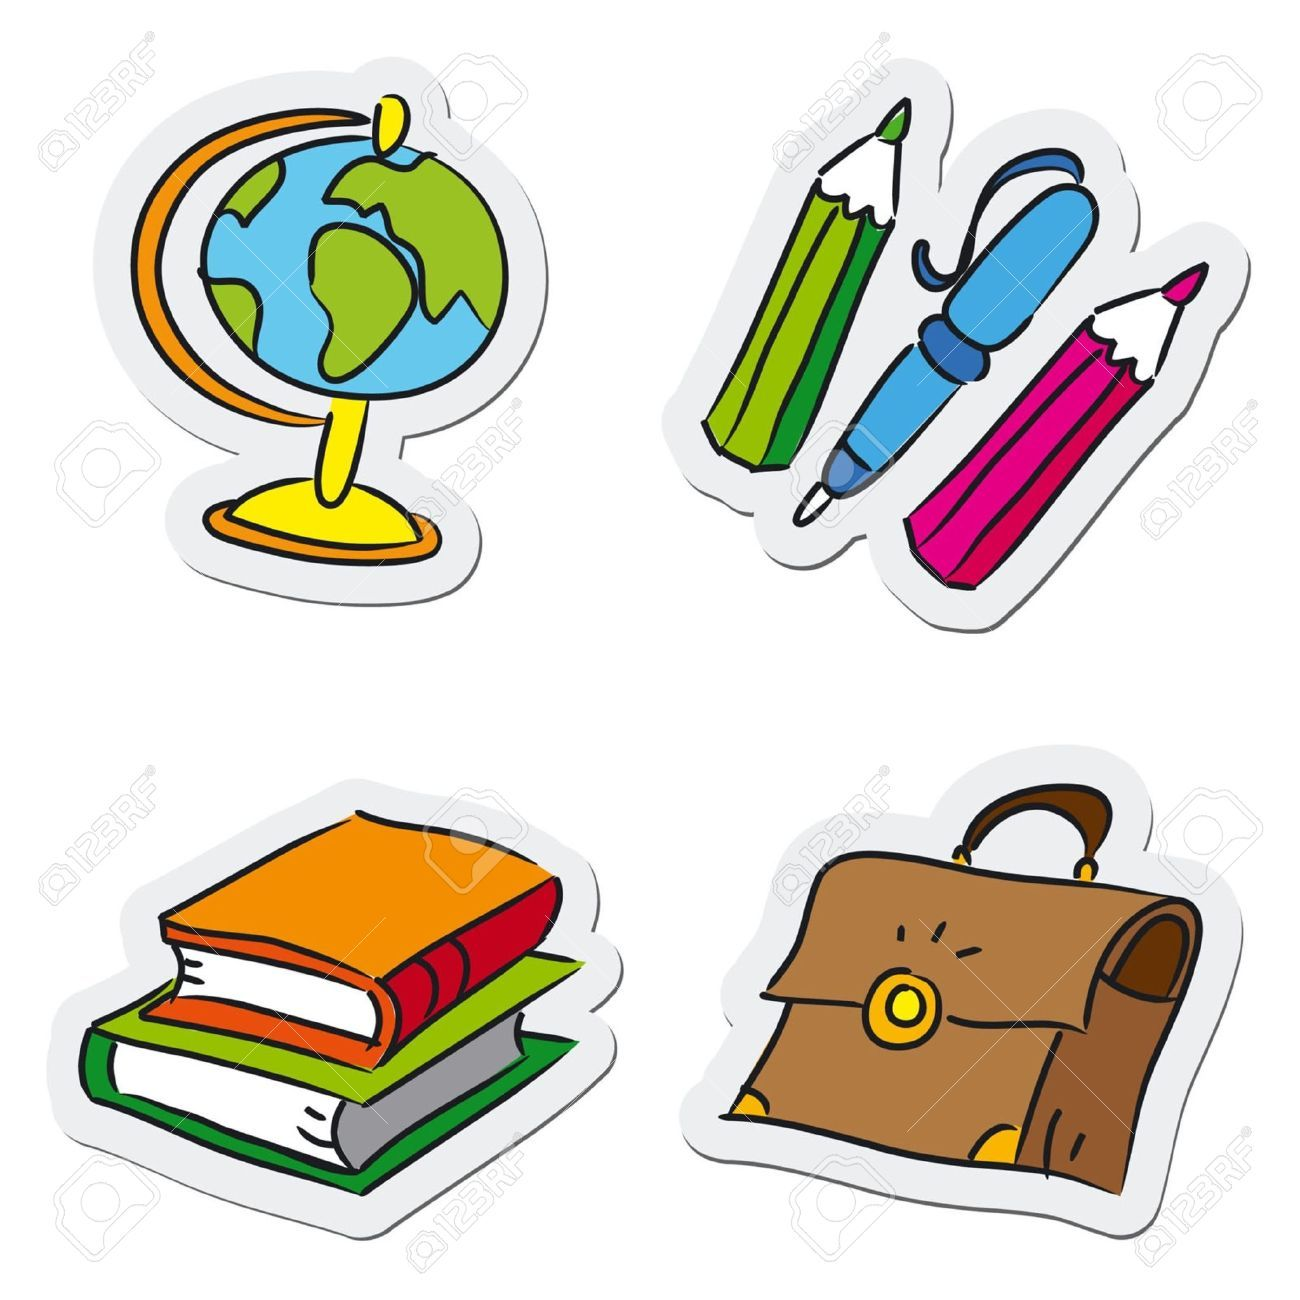 Clipart school objects 8 » Clipart Portal.